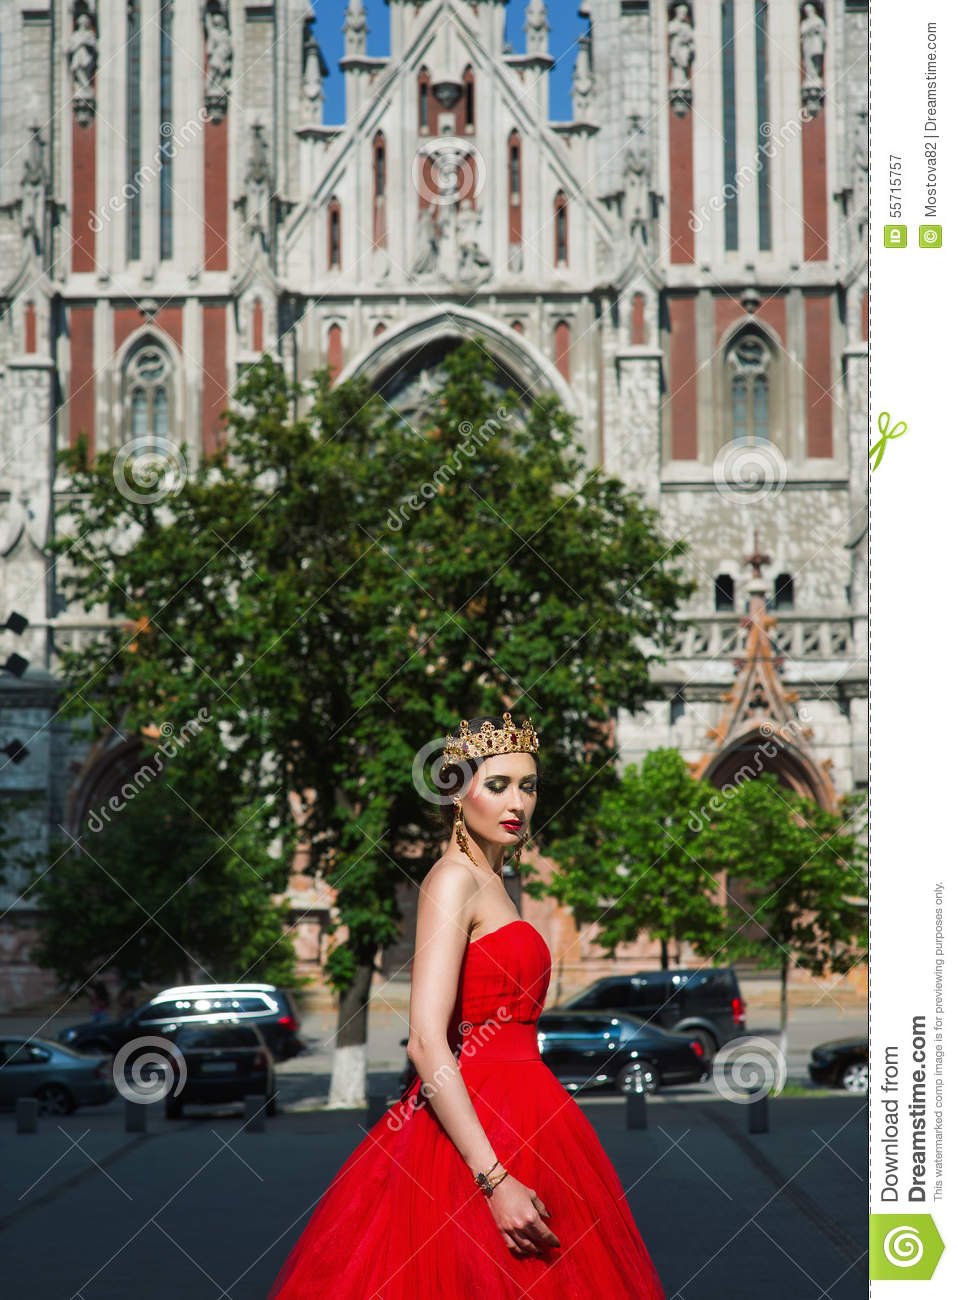 crown catholic girl personals The pro's and con of dating a catholic man  but girls dating the discerning catholic man worry that he may want to dedicate his life to priesthood or religious.